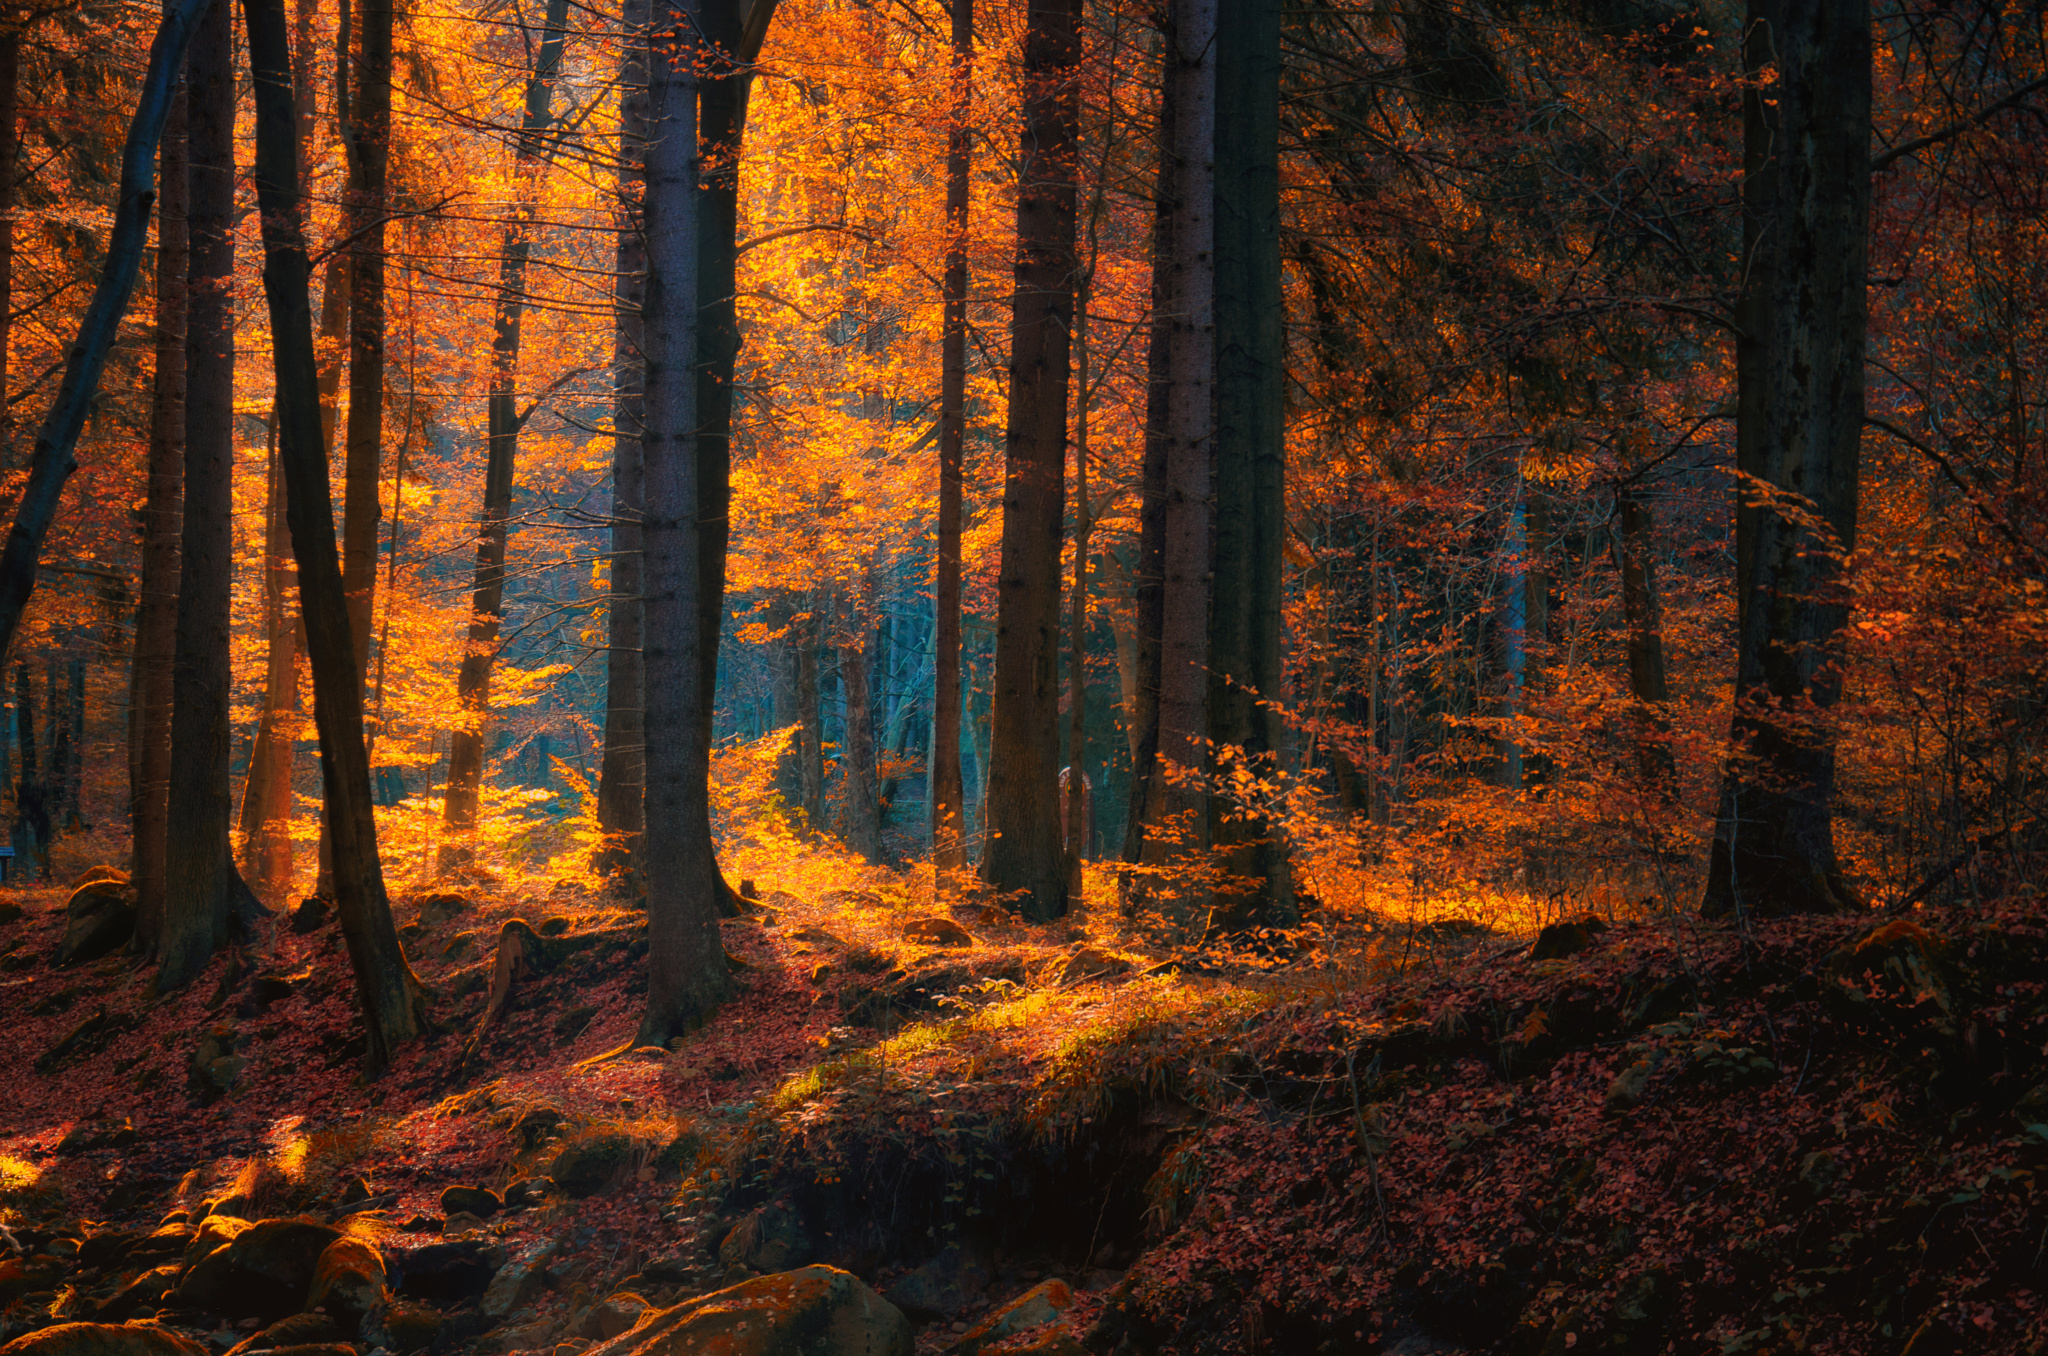 Dark Fall Iphone Wallpaper Autumn Forest Full Hd Wallpaper And Background Image